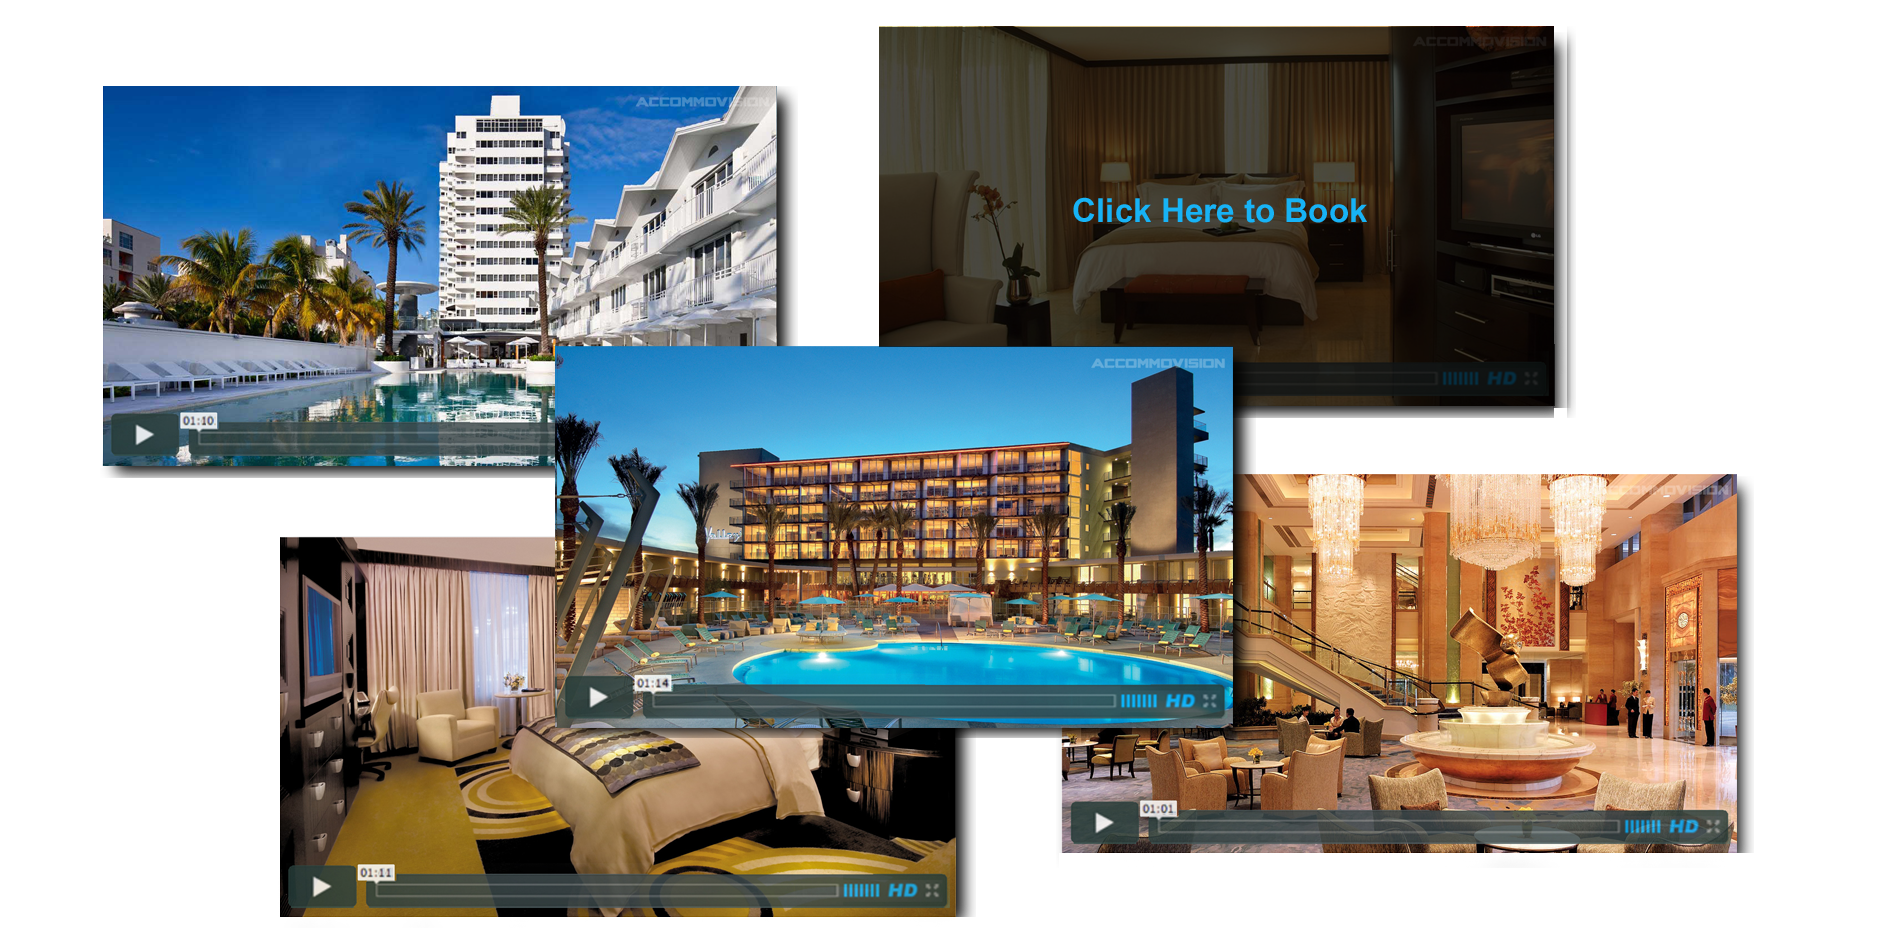 5 Reasons Your Hotel Needs Video